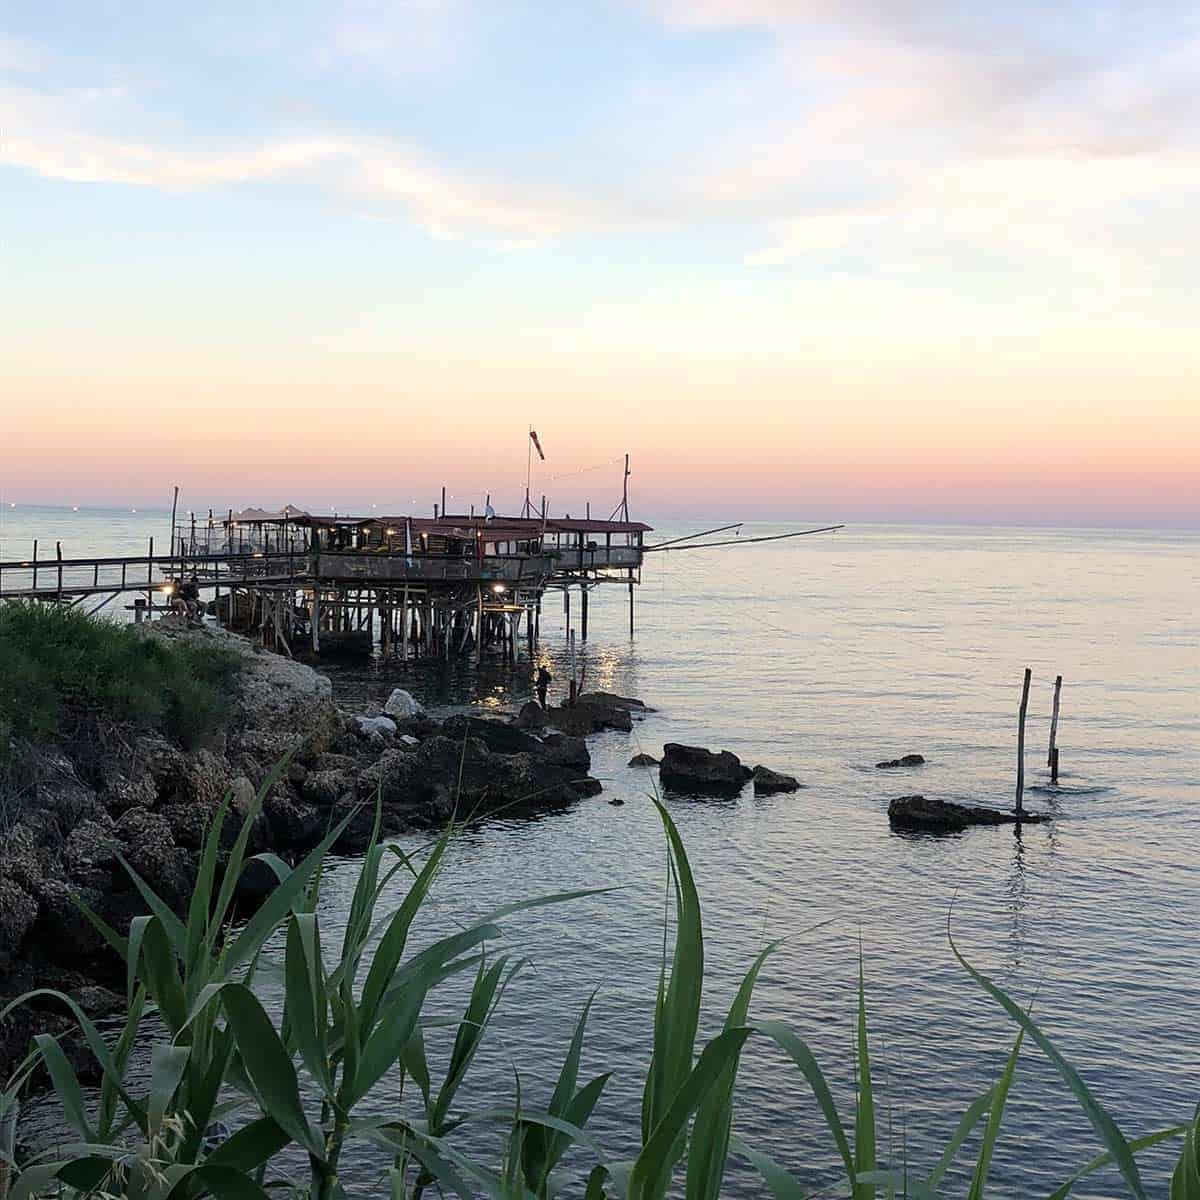 A trabocco on the coast of Abruzzo.